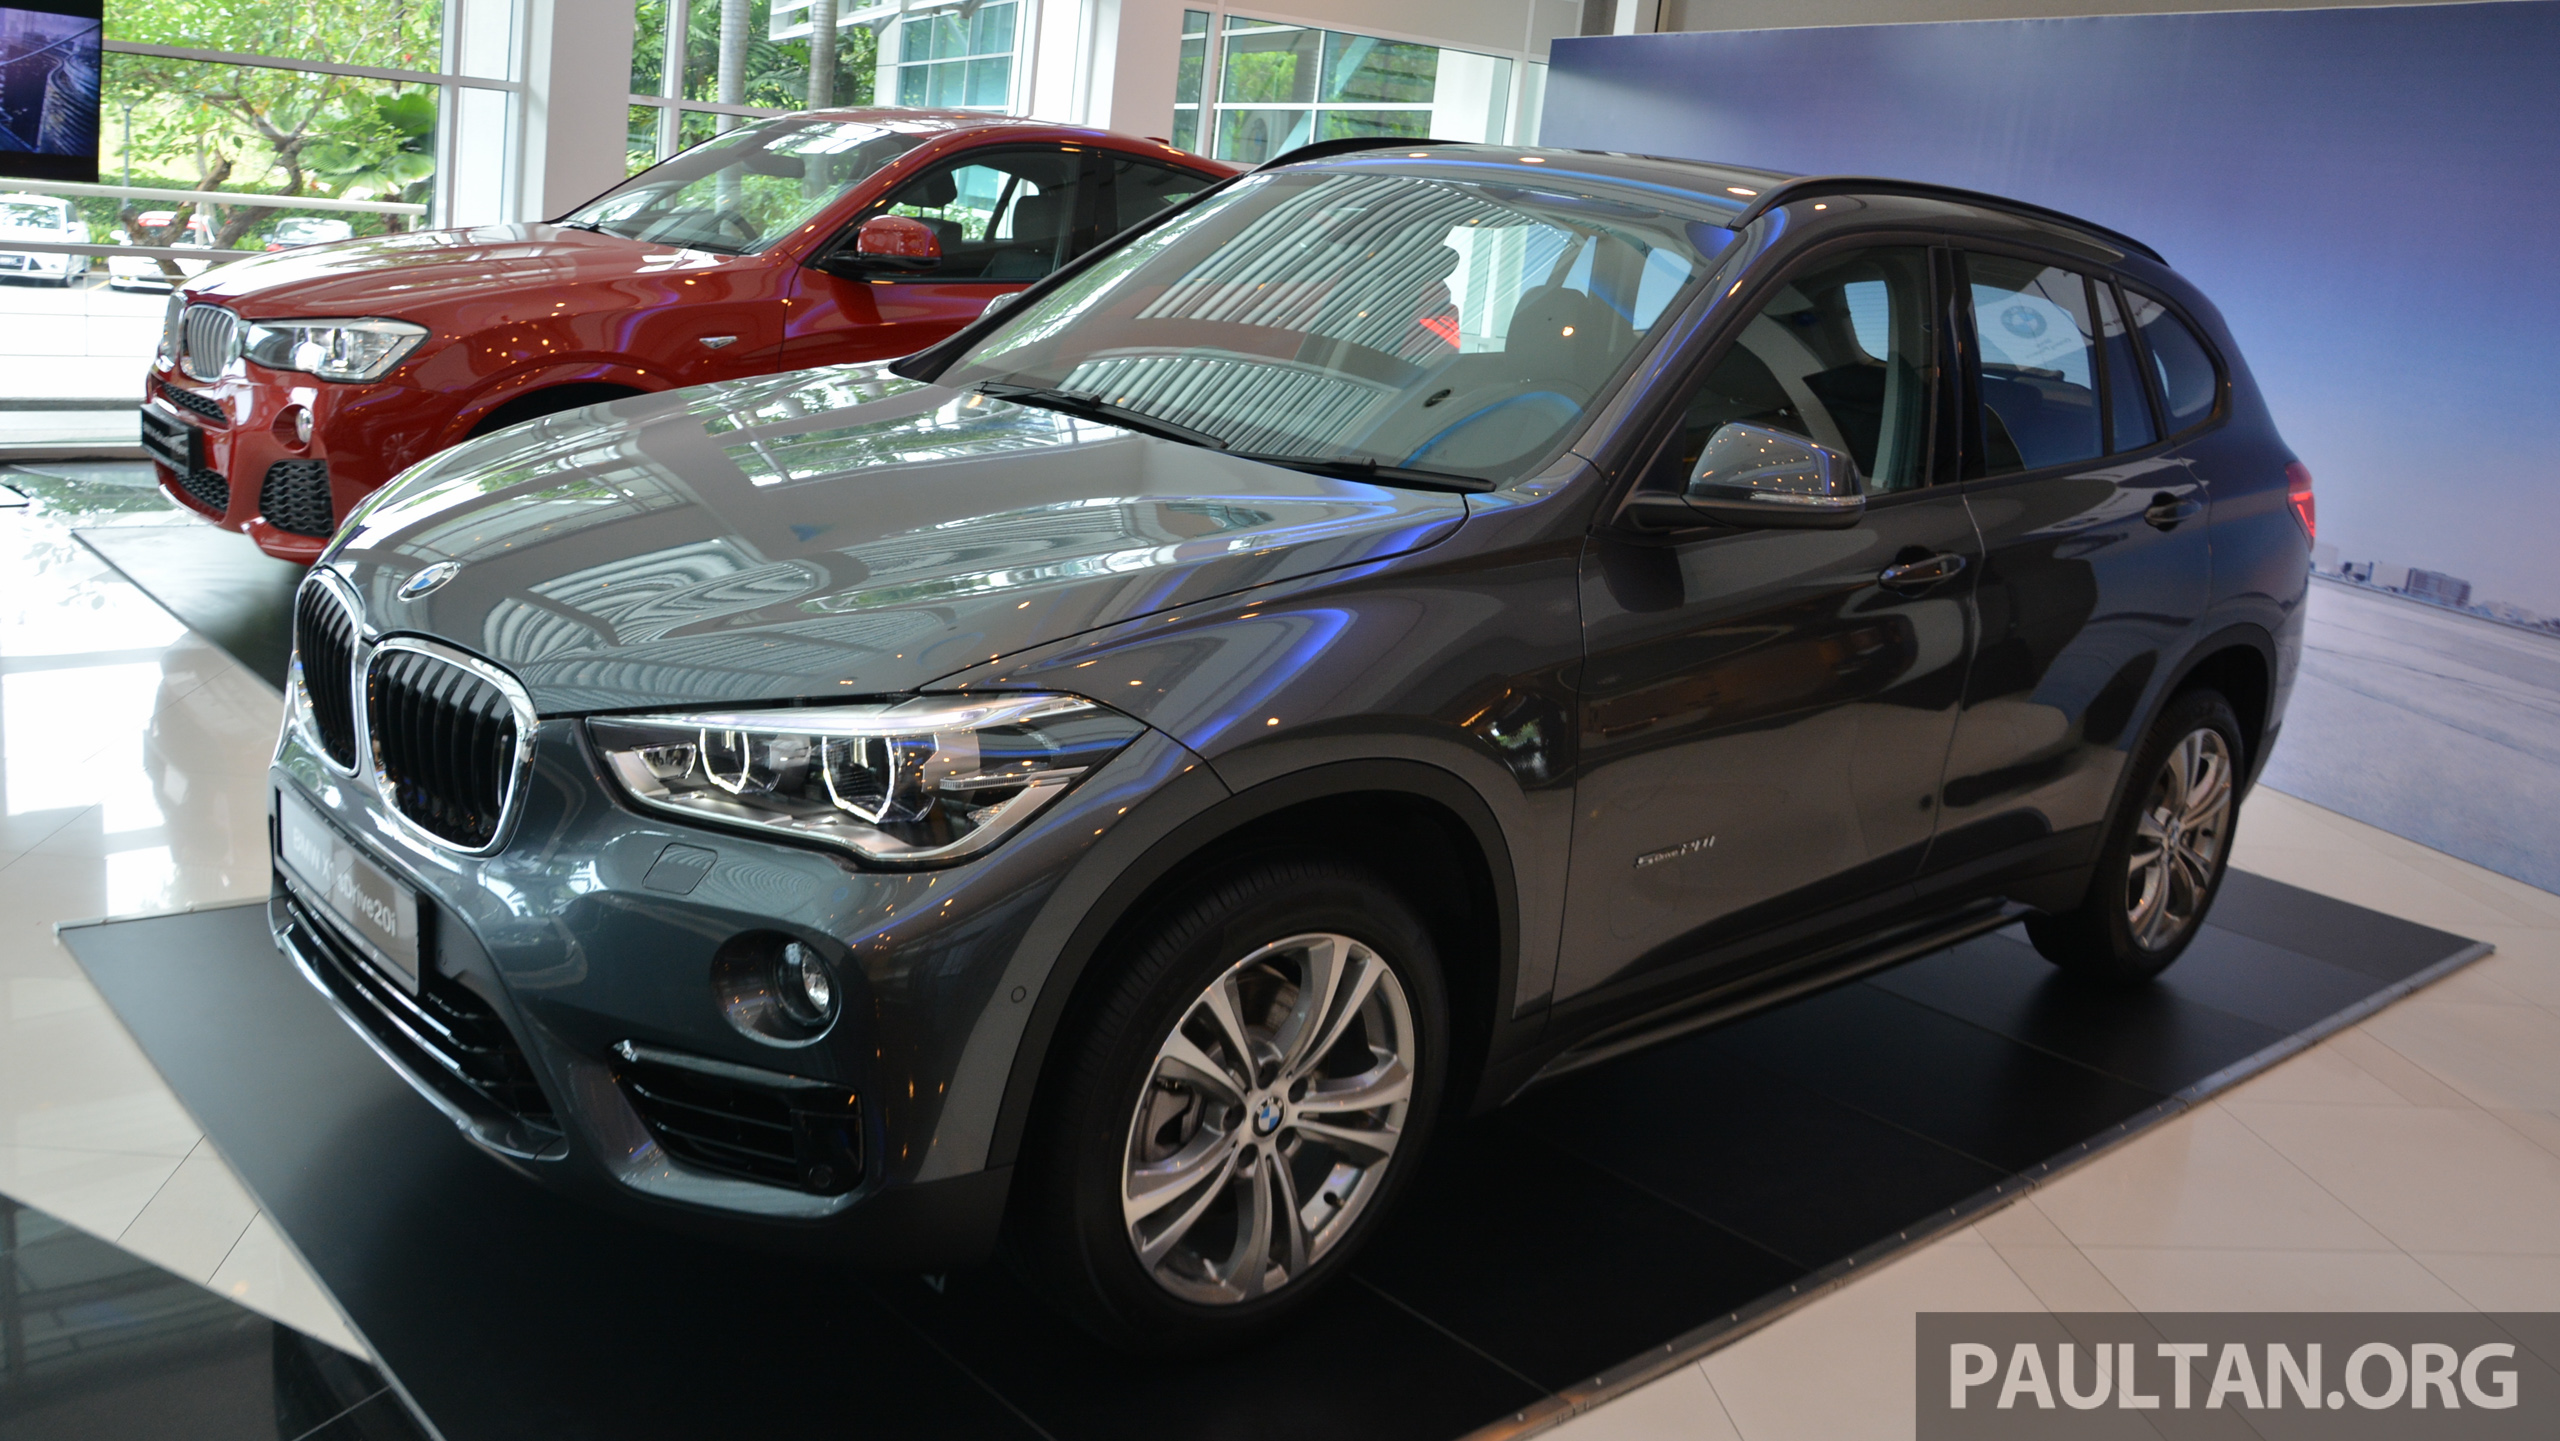 ckd bmw x1 and x4 get eev incentives new xdrive20d for x1 lower prices rm229k to rm397k. Black Bedroom Furniture Sets. Home Design Ideas